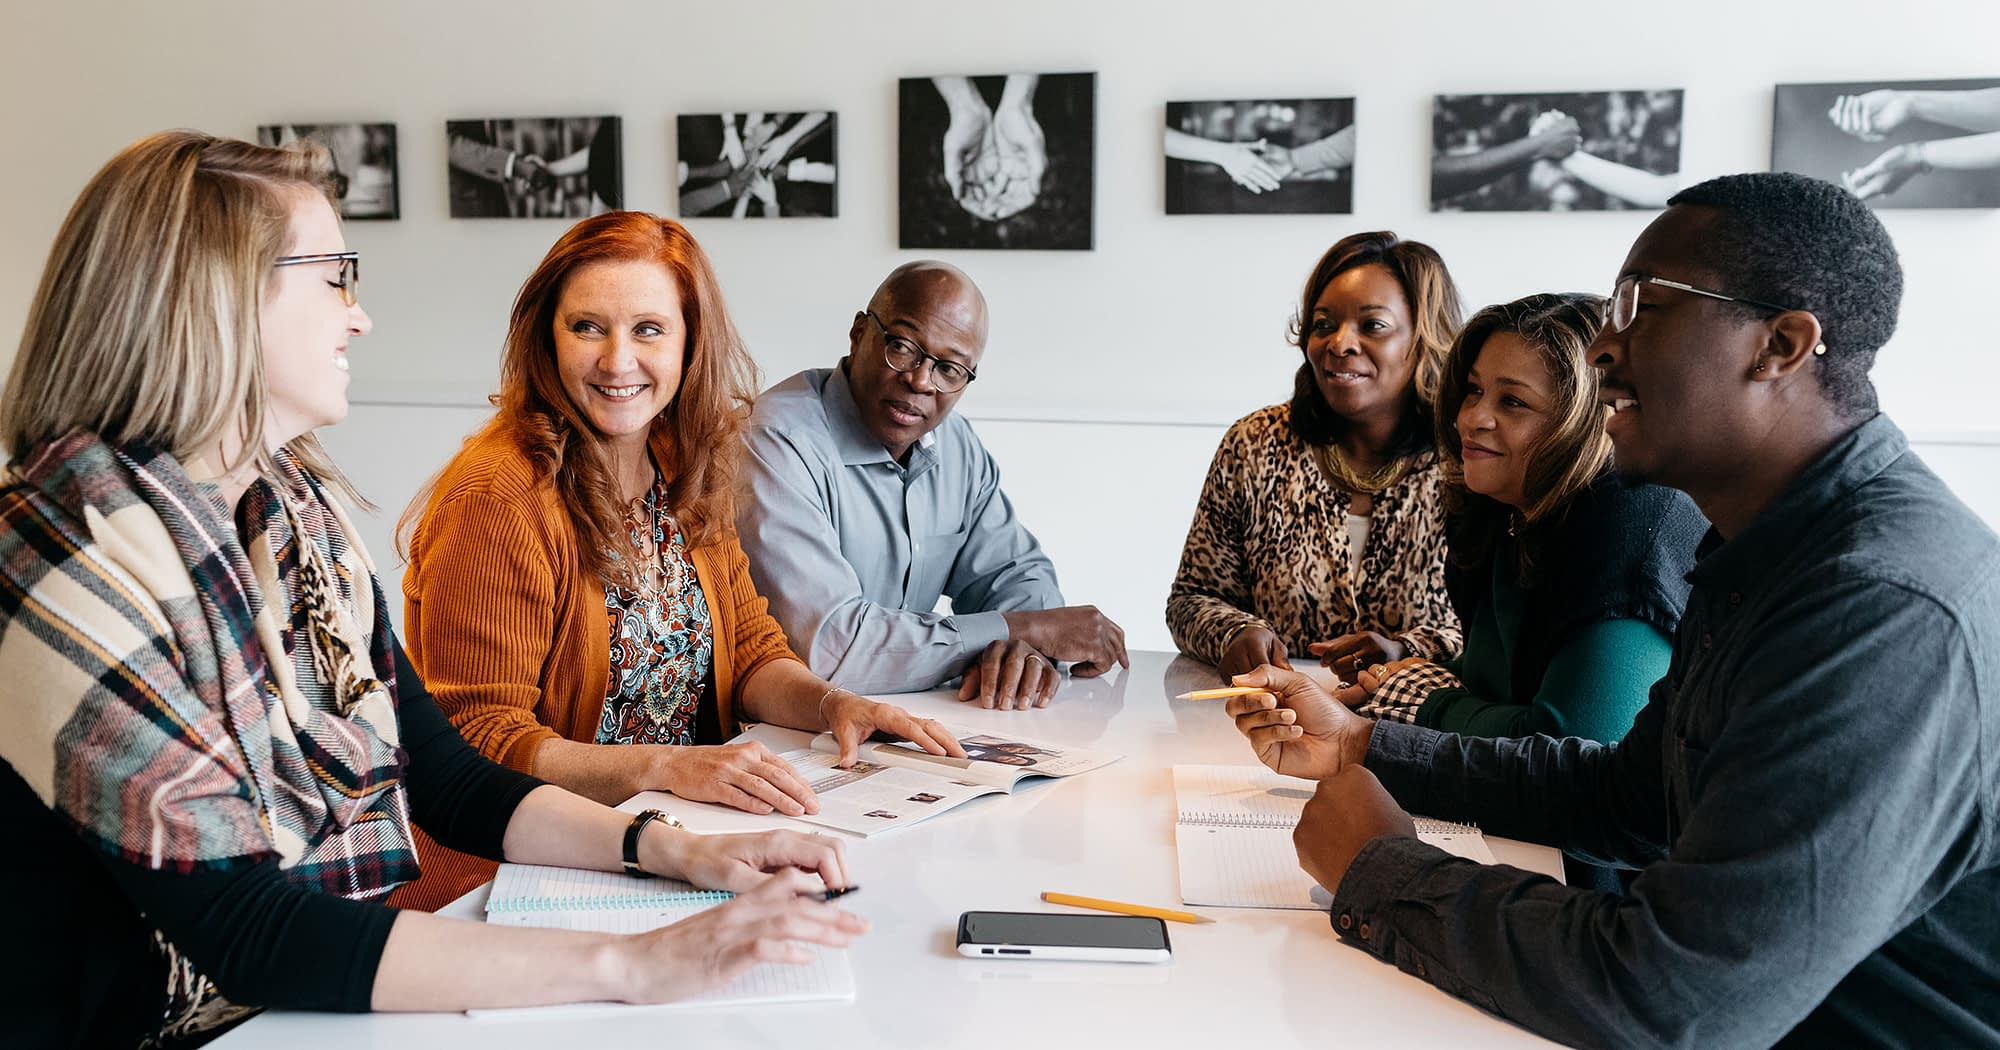 Four people working together at a white table.